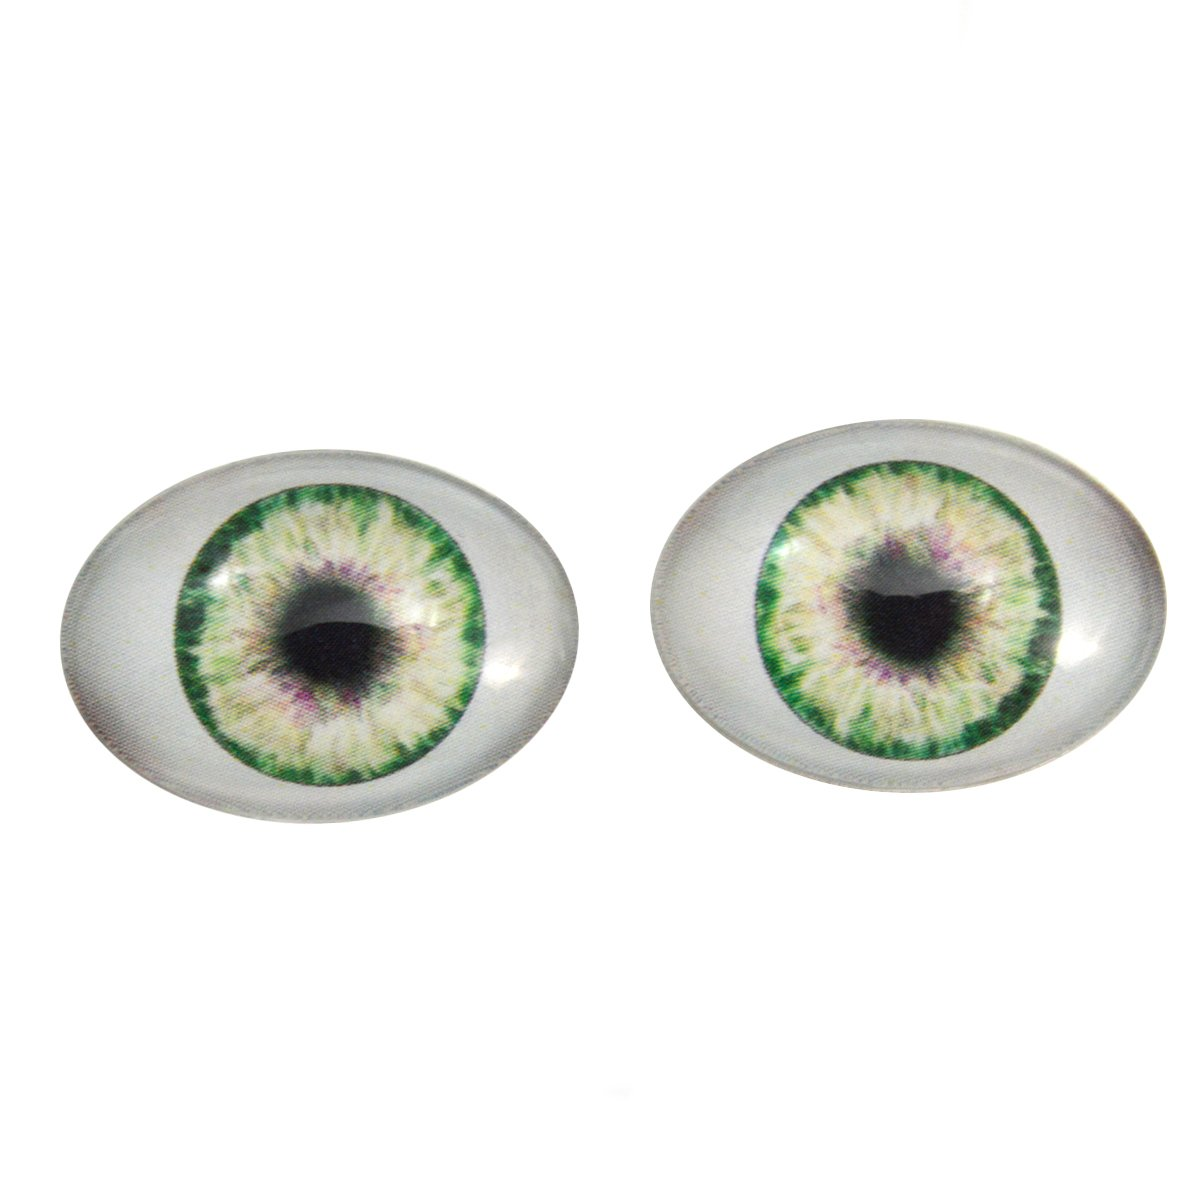 Green Doll Oval Glass Eyes Fantasy Taxidermy Art Doll Making or Jewelry Crafts Set of 2 (30mm x 40mm) Megan' s Beaded Designs 599935291-30